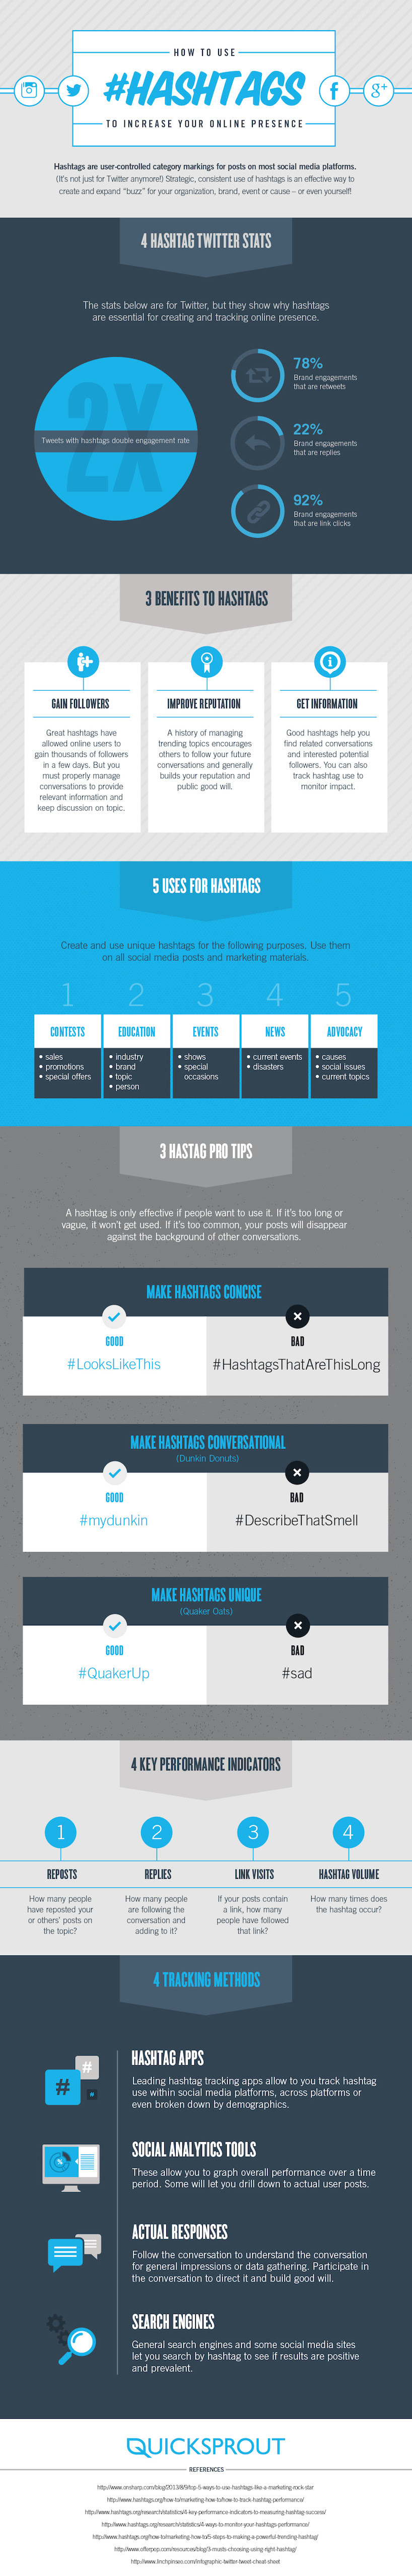 How to Use Hashtags to Increase Your Social Media Presence - infographic